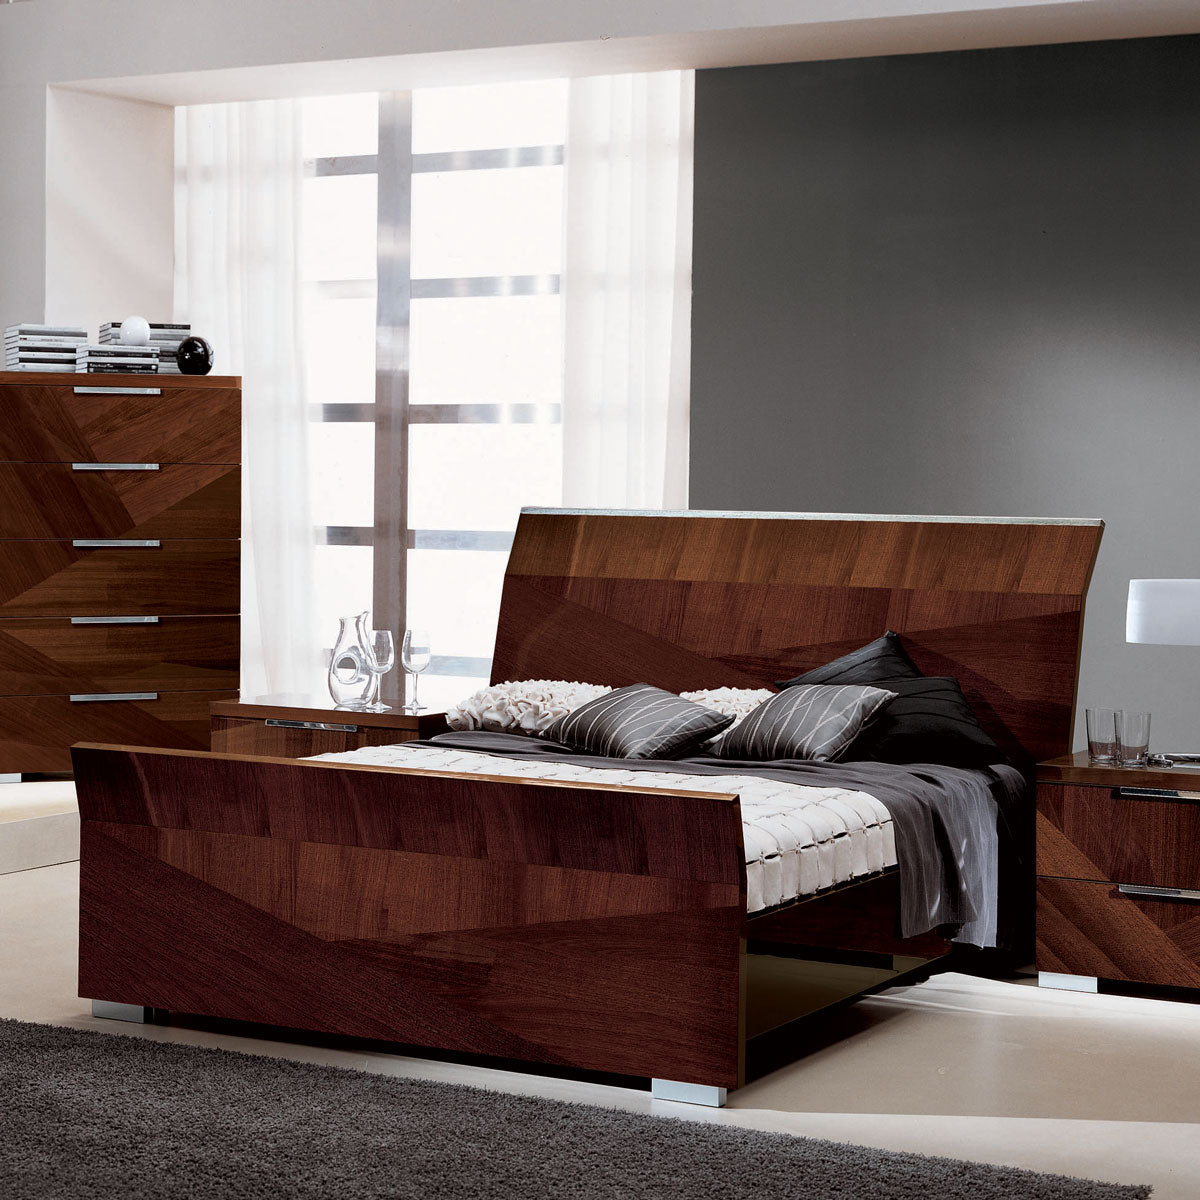 ALF Capri Bedroom Collection - Isingtec